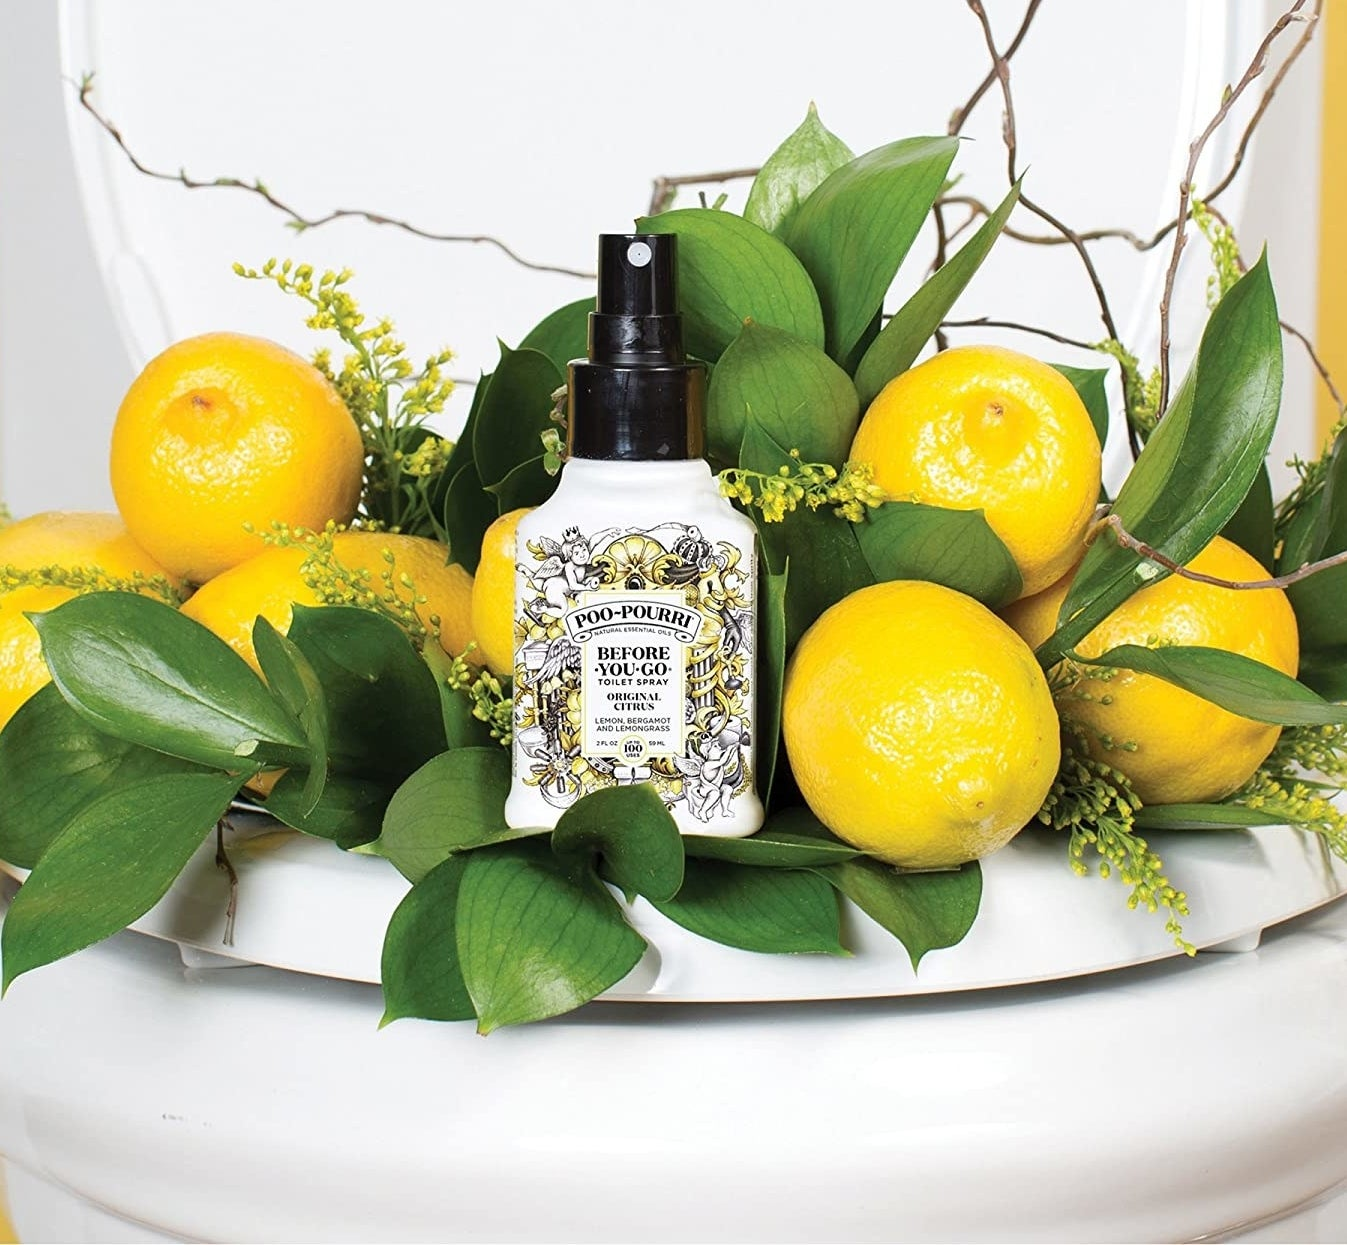 Bottle of Poo-Pouri in original citrus scent